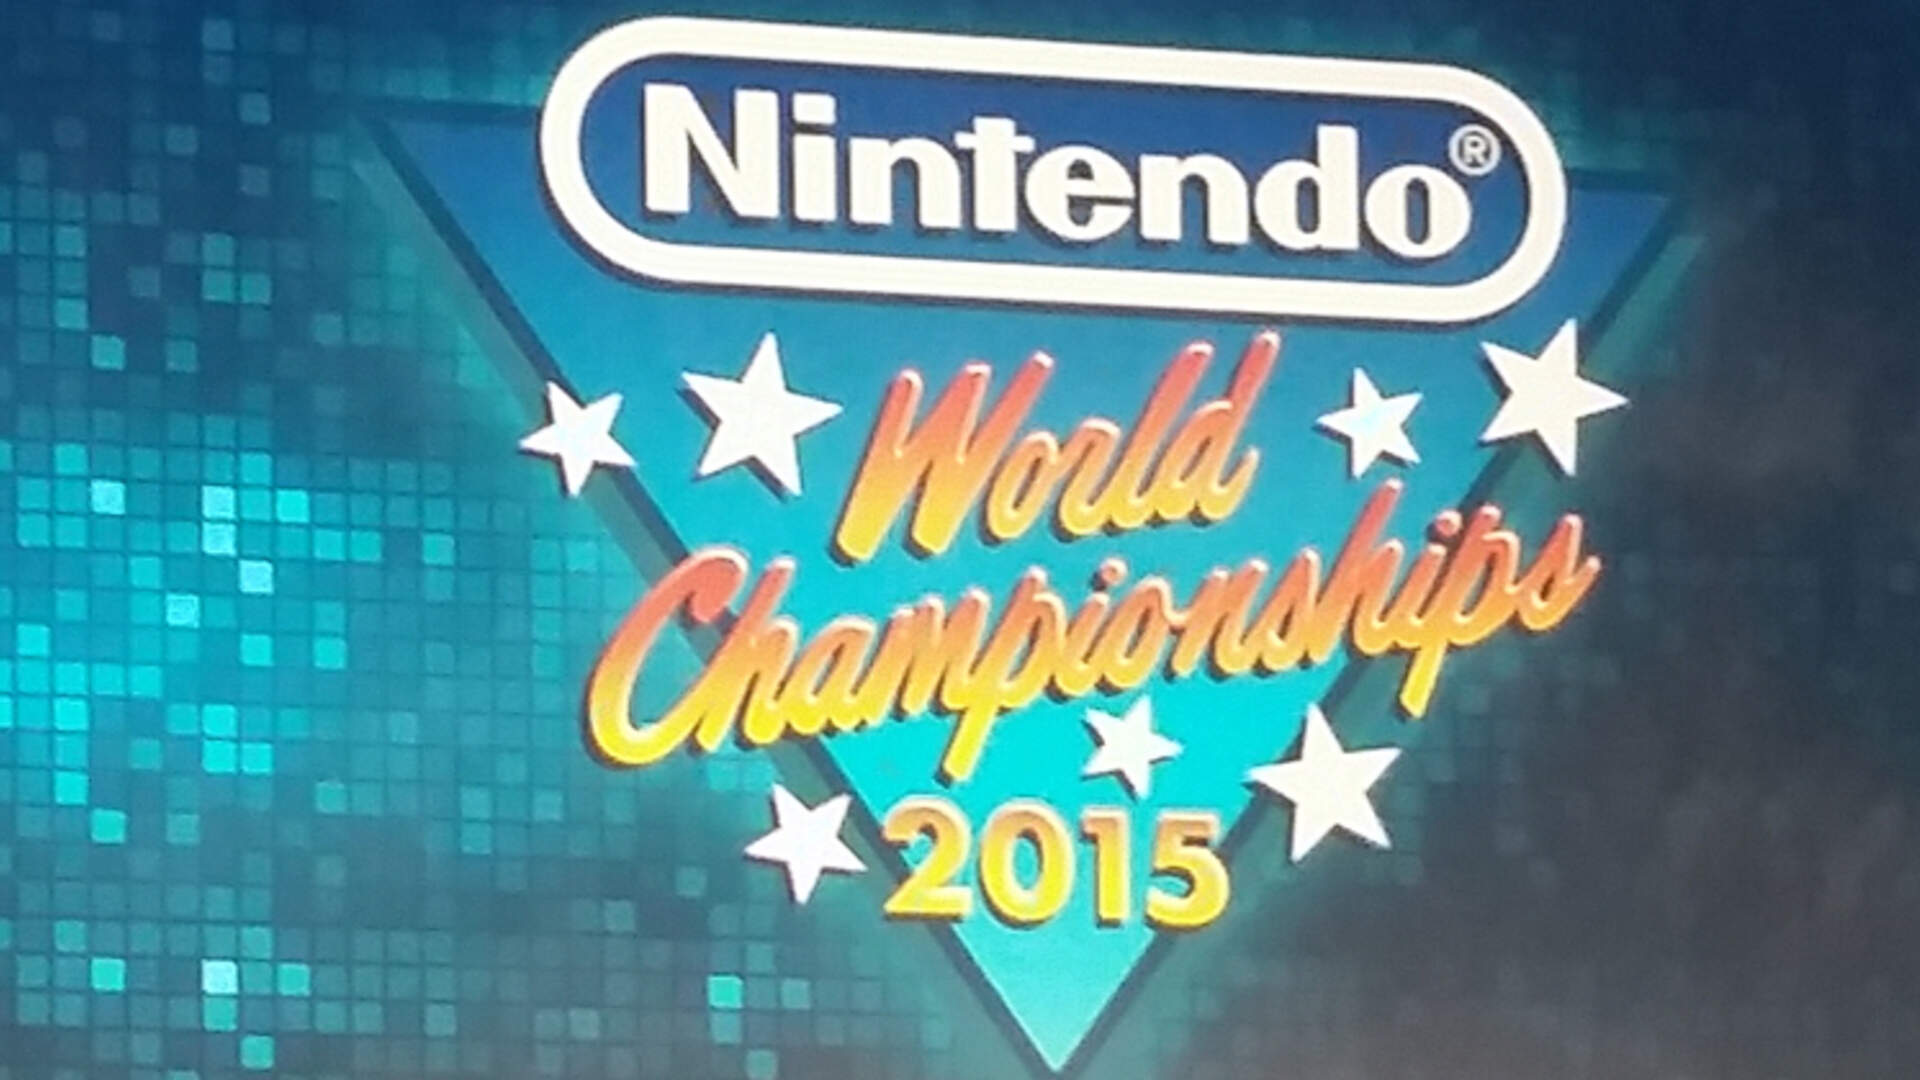 I Finally Made It: The View from the Nintendo World Championships 2015